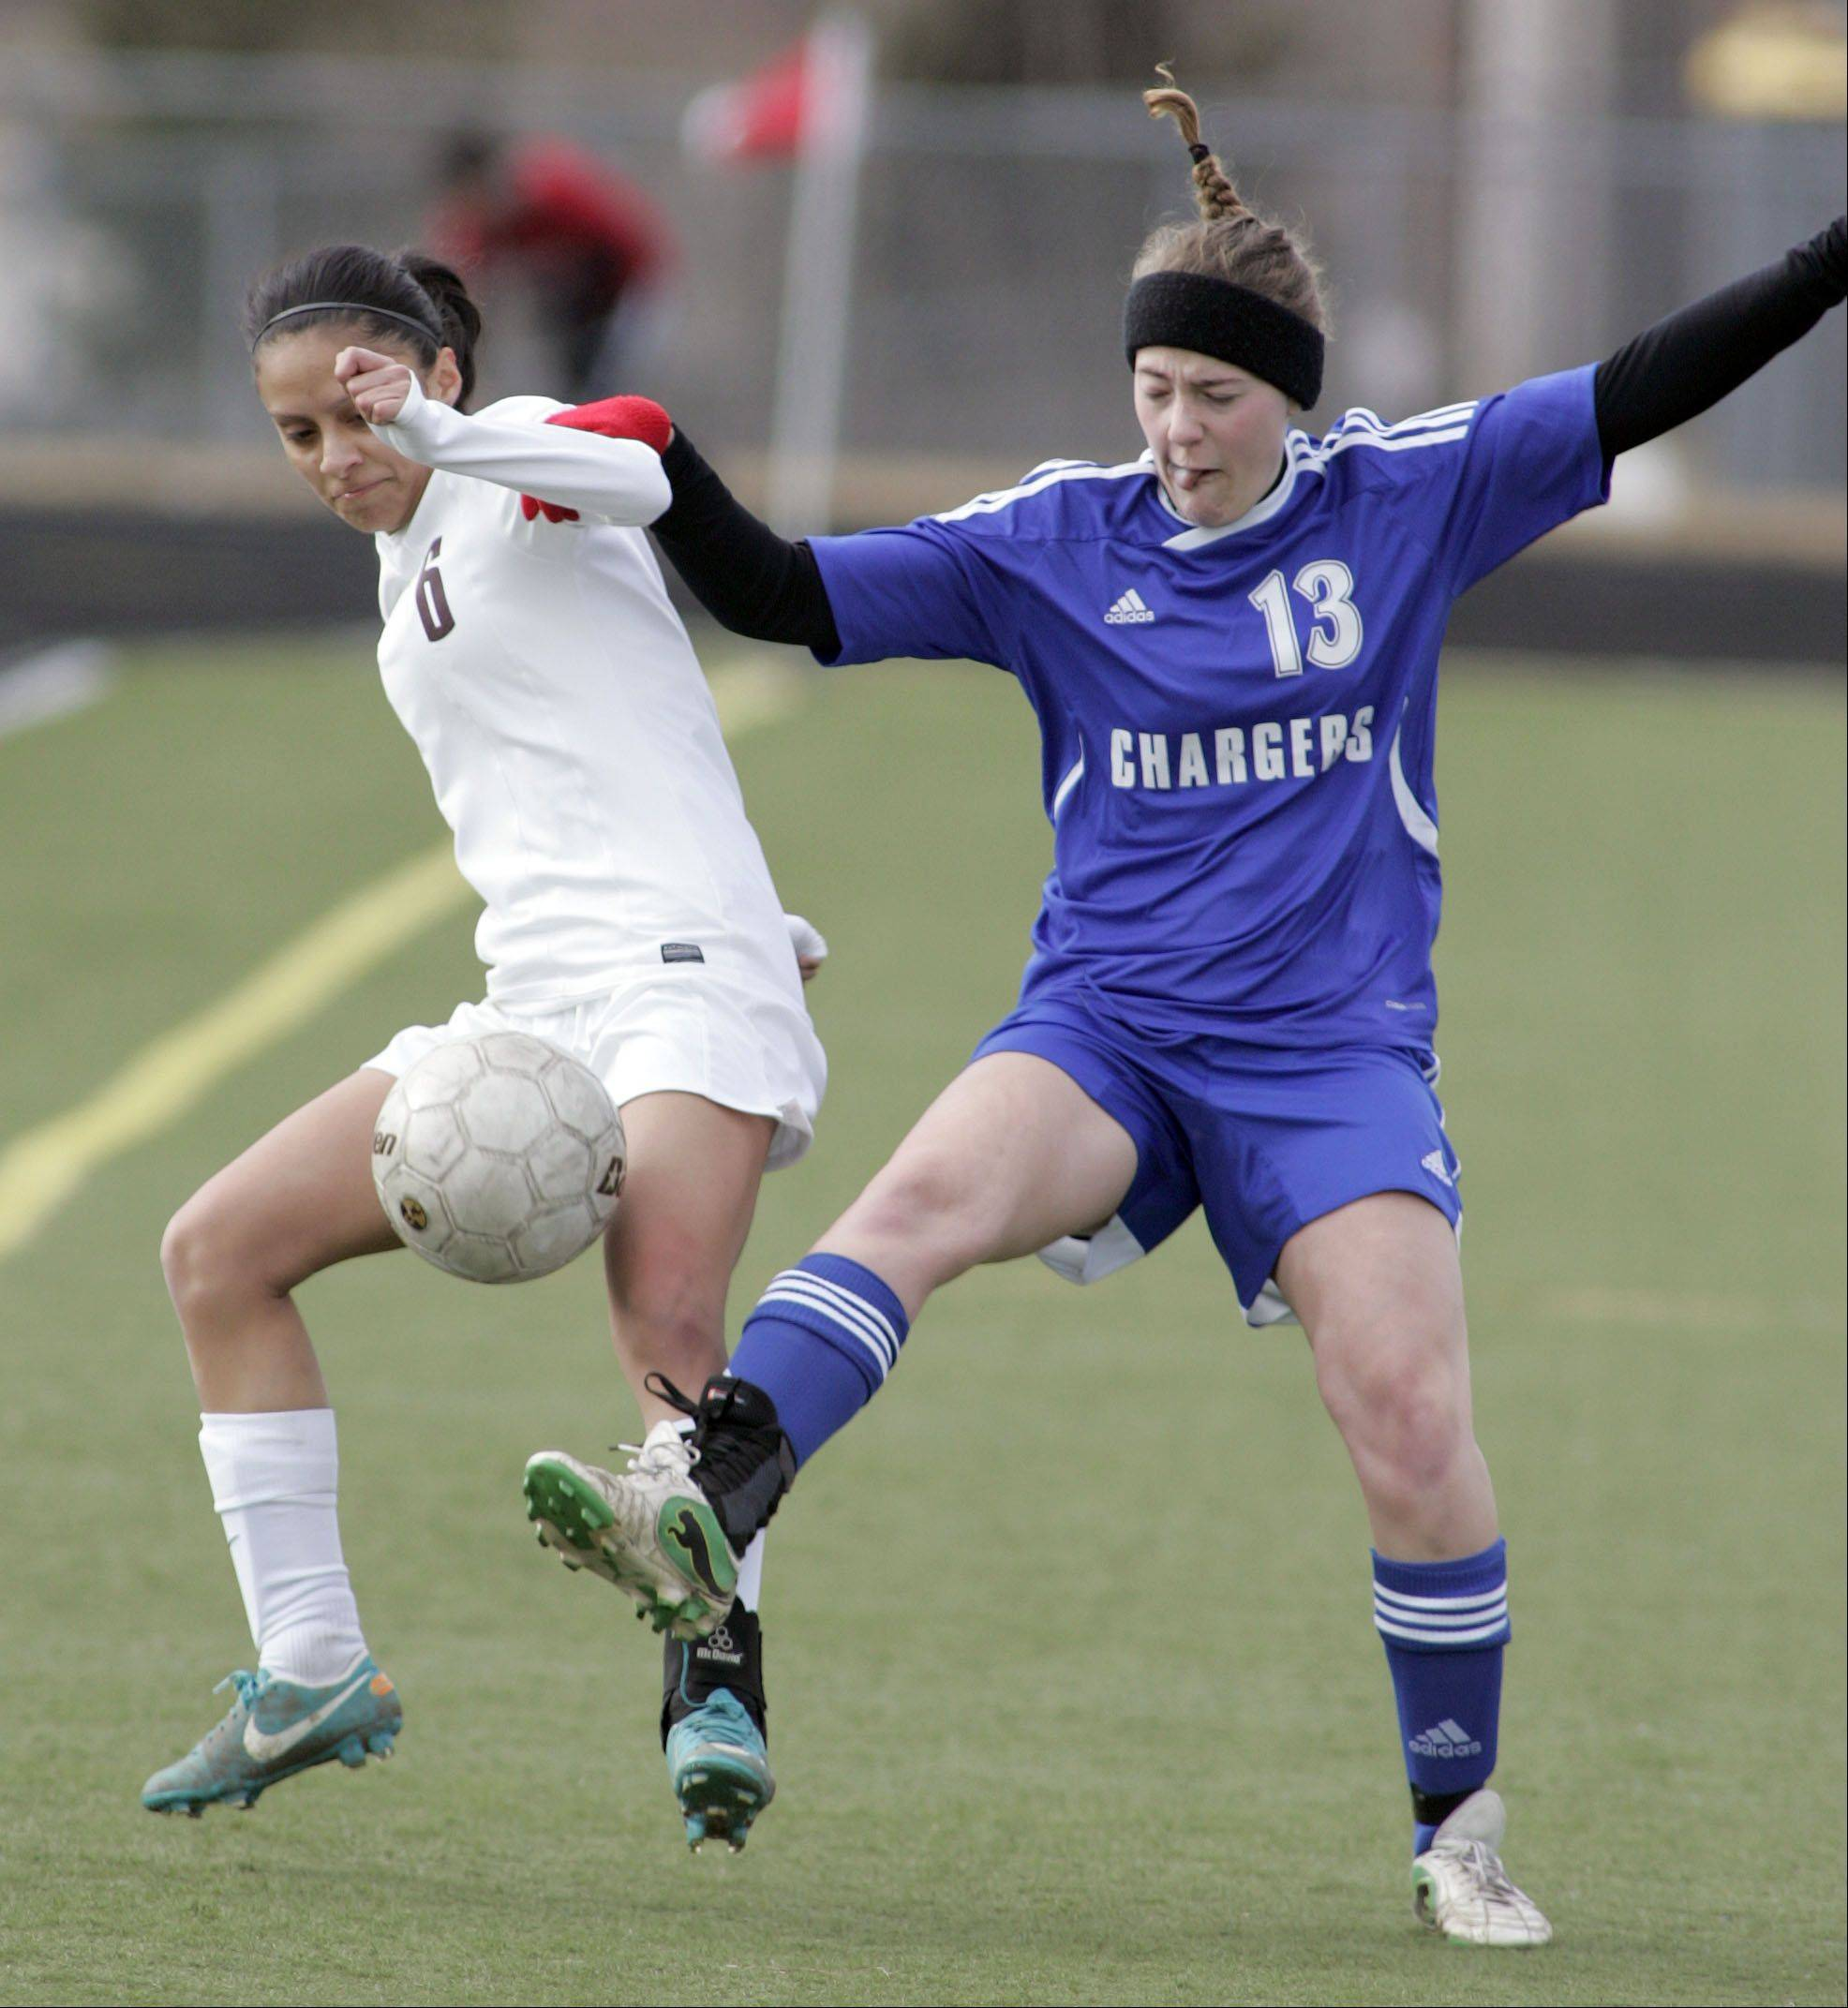 Elgin's Daisy Gomez (6) battles Dundee-Crown's Cori Schrade during girls soccer action in the South Elgin Spring Break tournament at Millennium Field in Streamwood earlier this season.